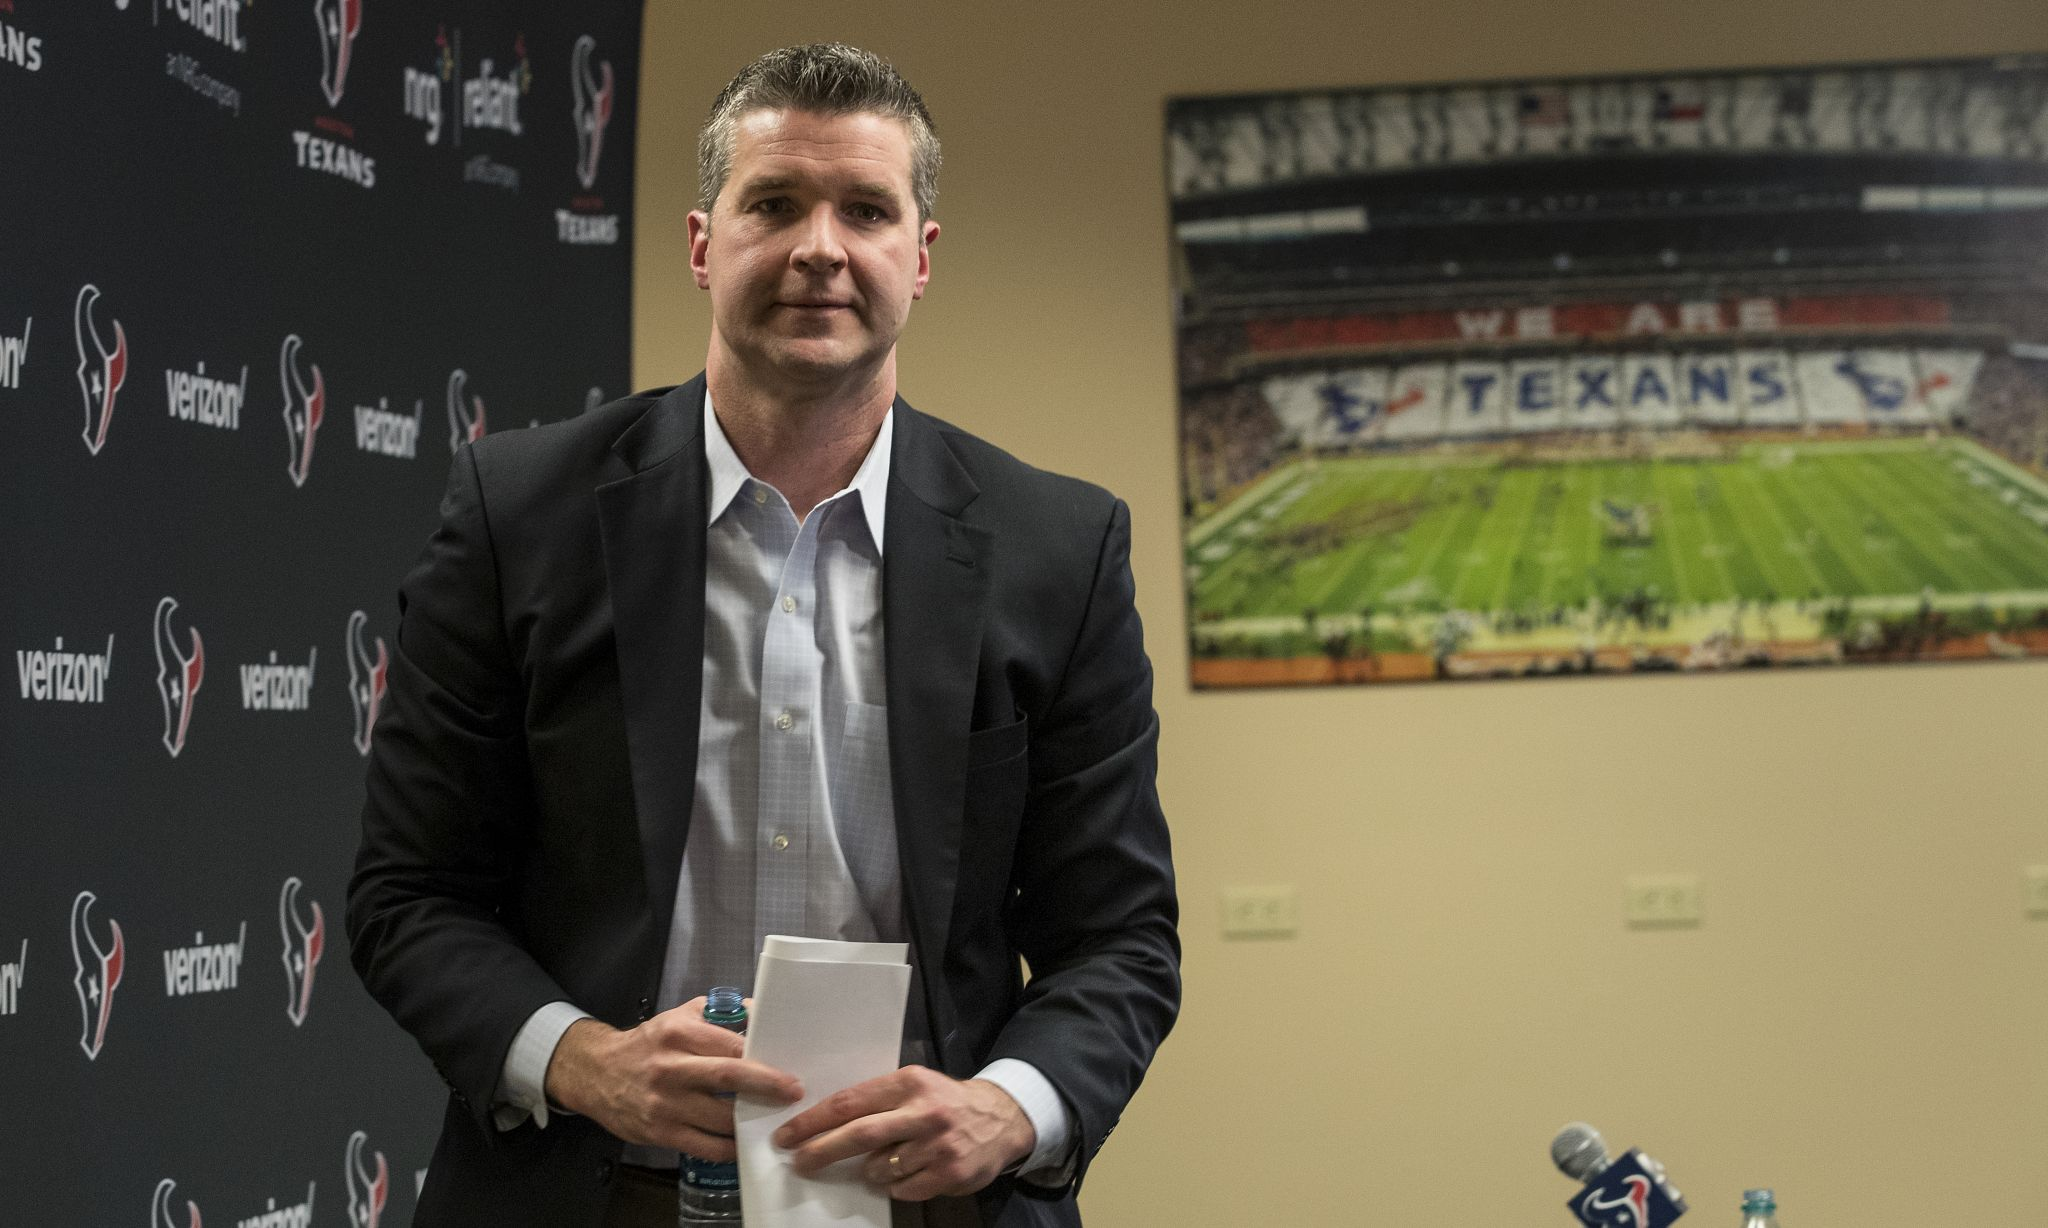 Colleagues vouch for ex-Texans GM Brian Gaine amid discrimination allegation